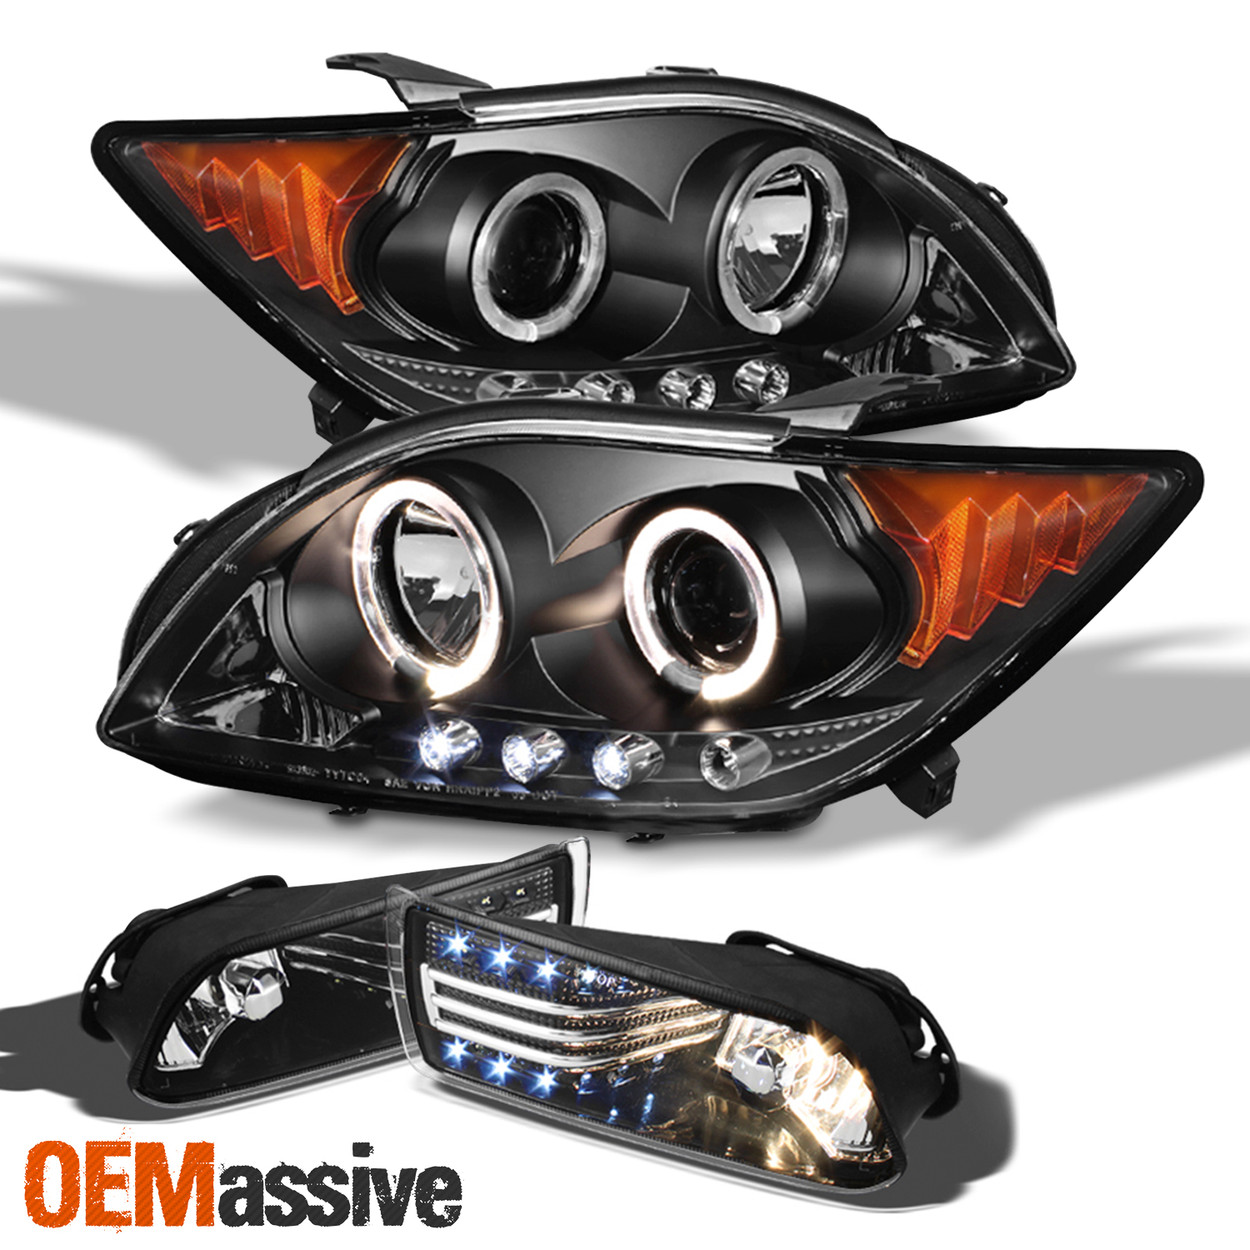 For 2005-2010 Scion Tc JDM Style Fog Lights Lamps w//Wiring Switch+Toggle Switch